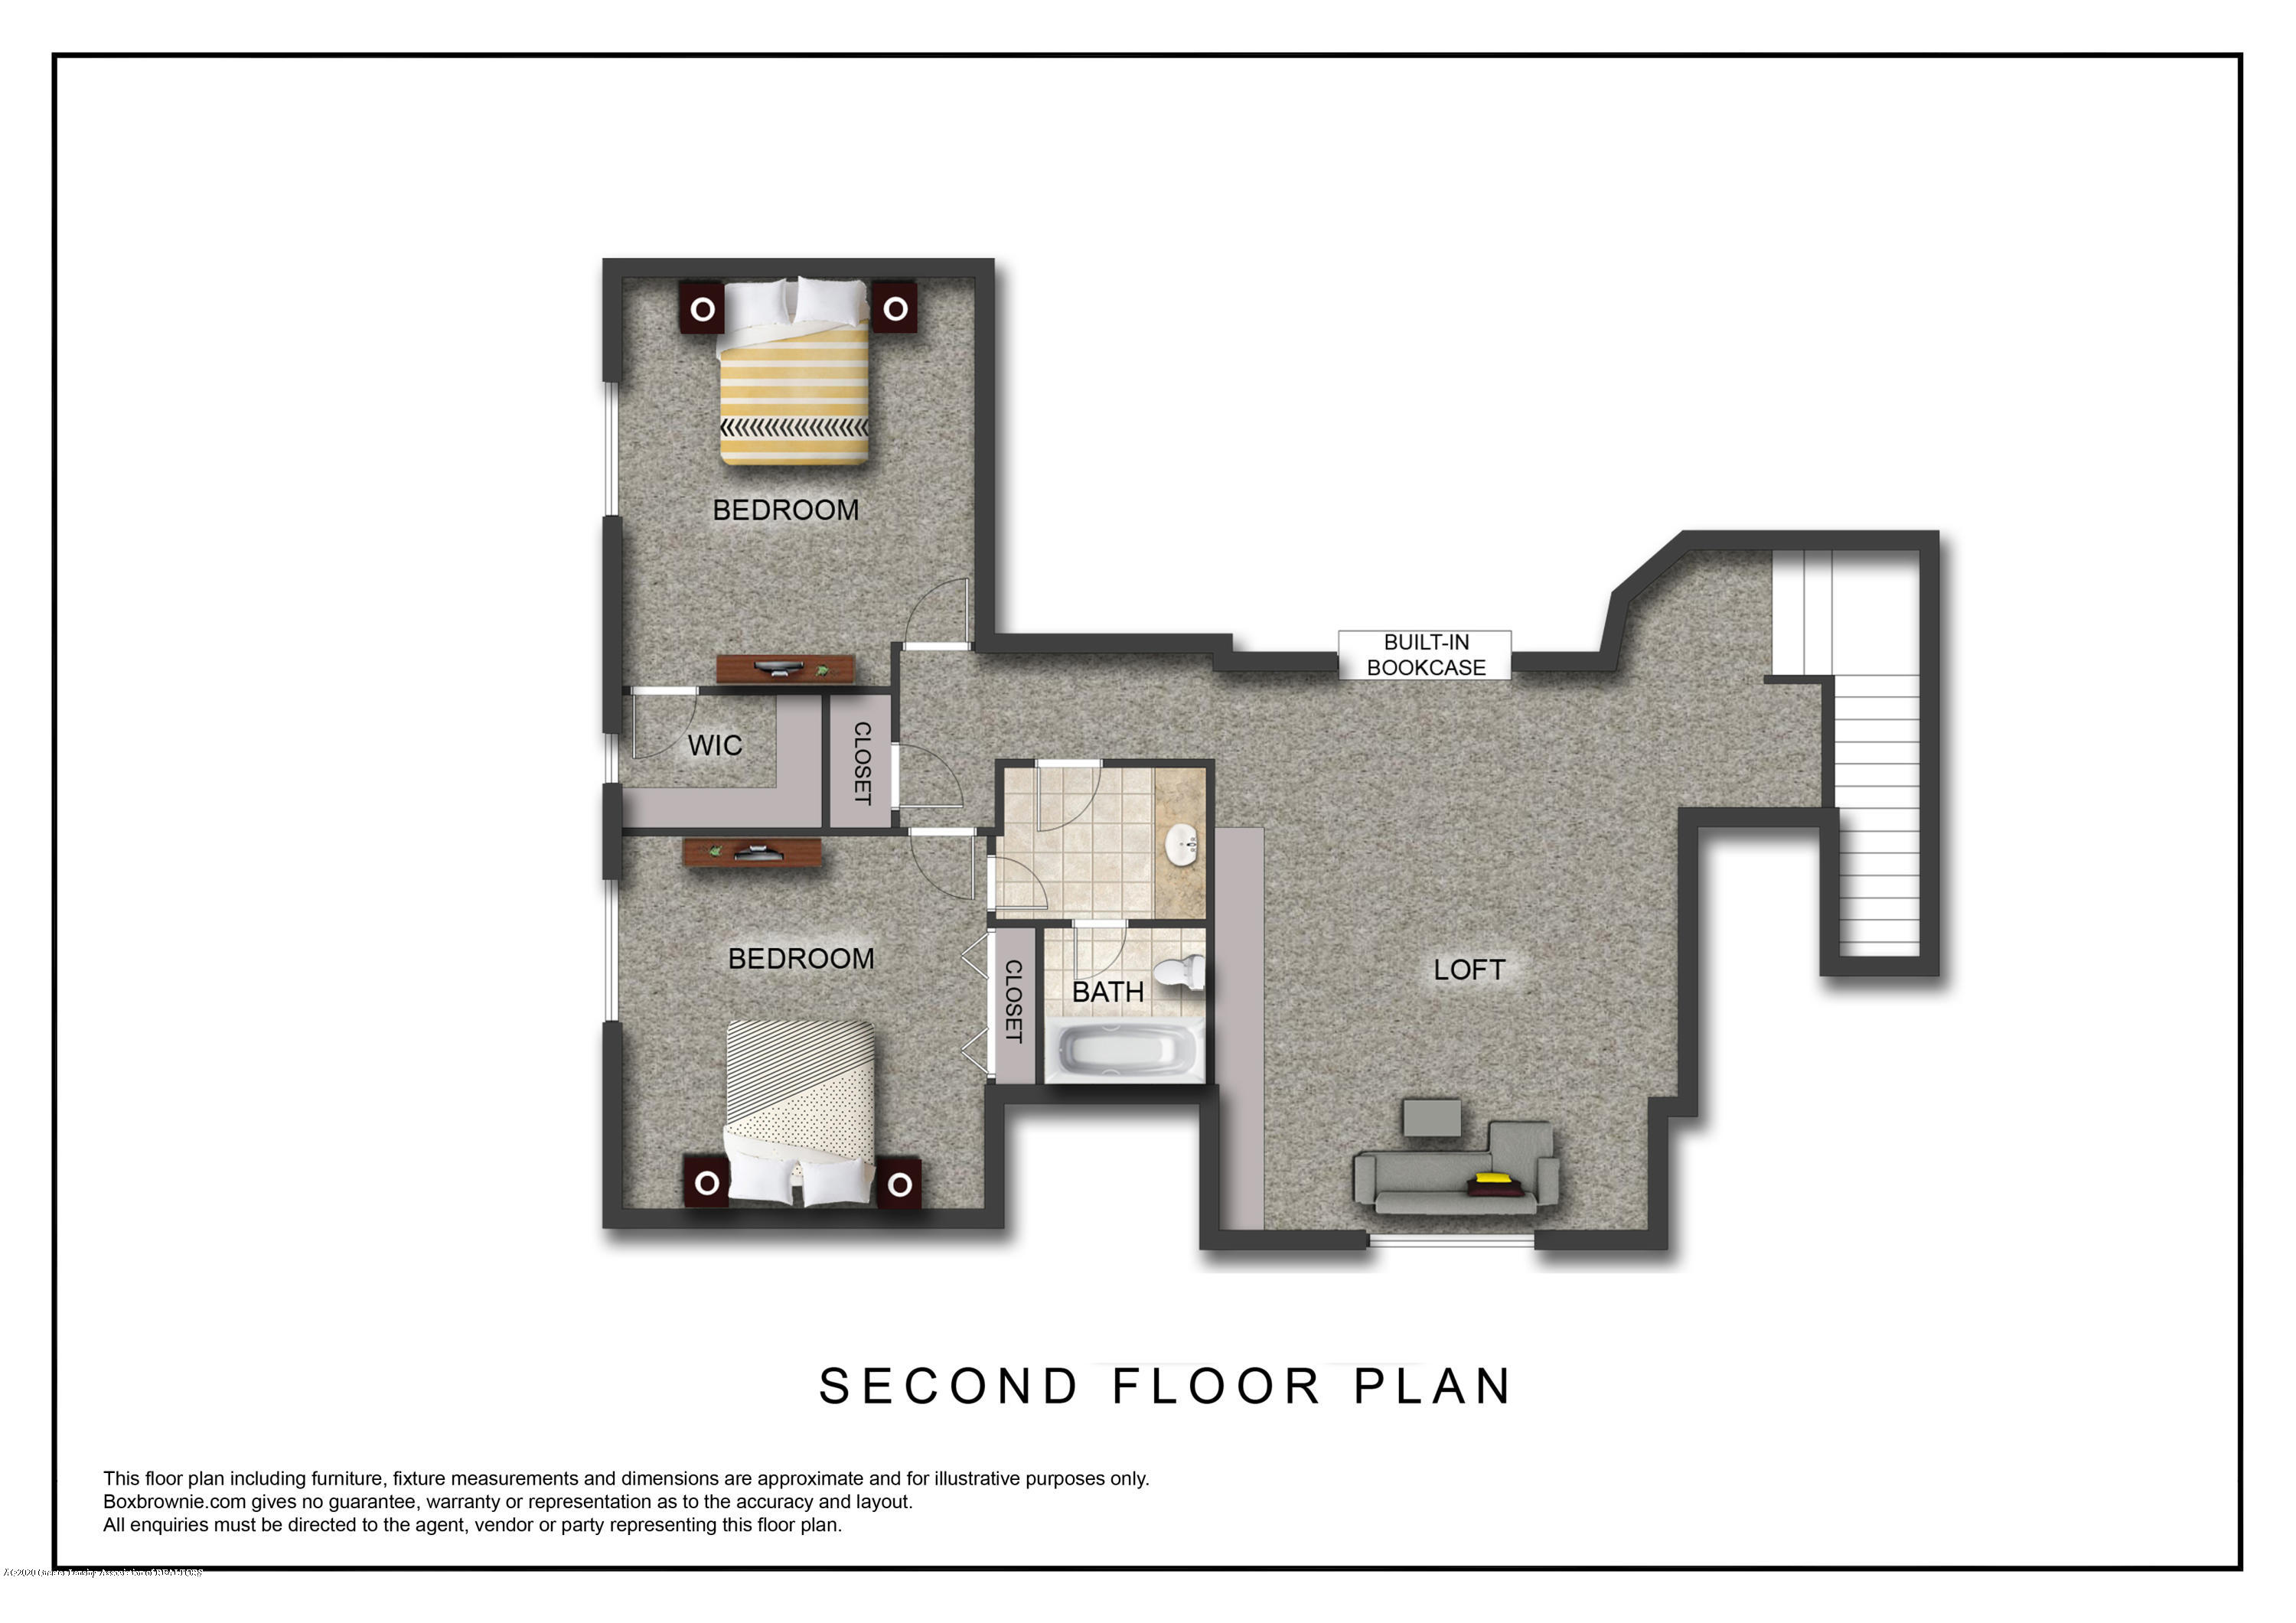 402 Shoreline Dr - Second Floor Plan - 29